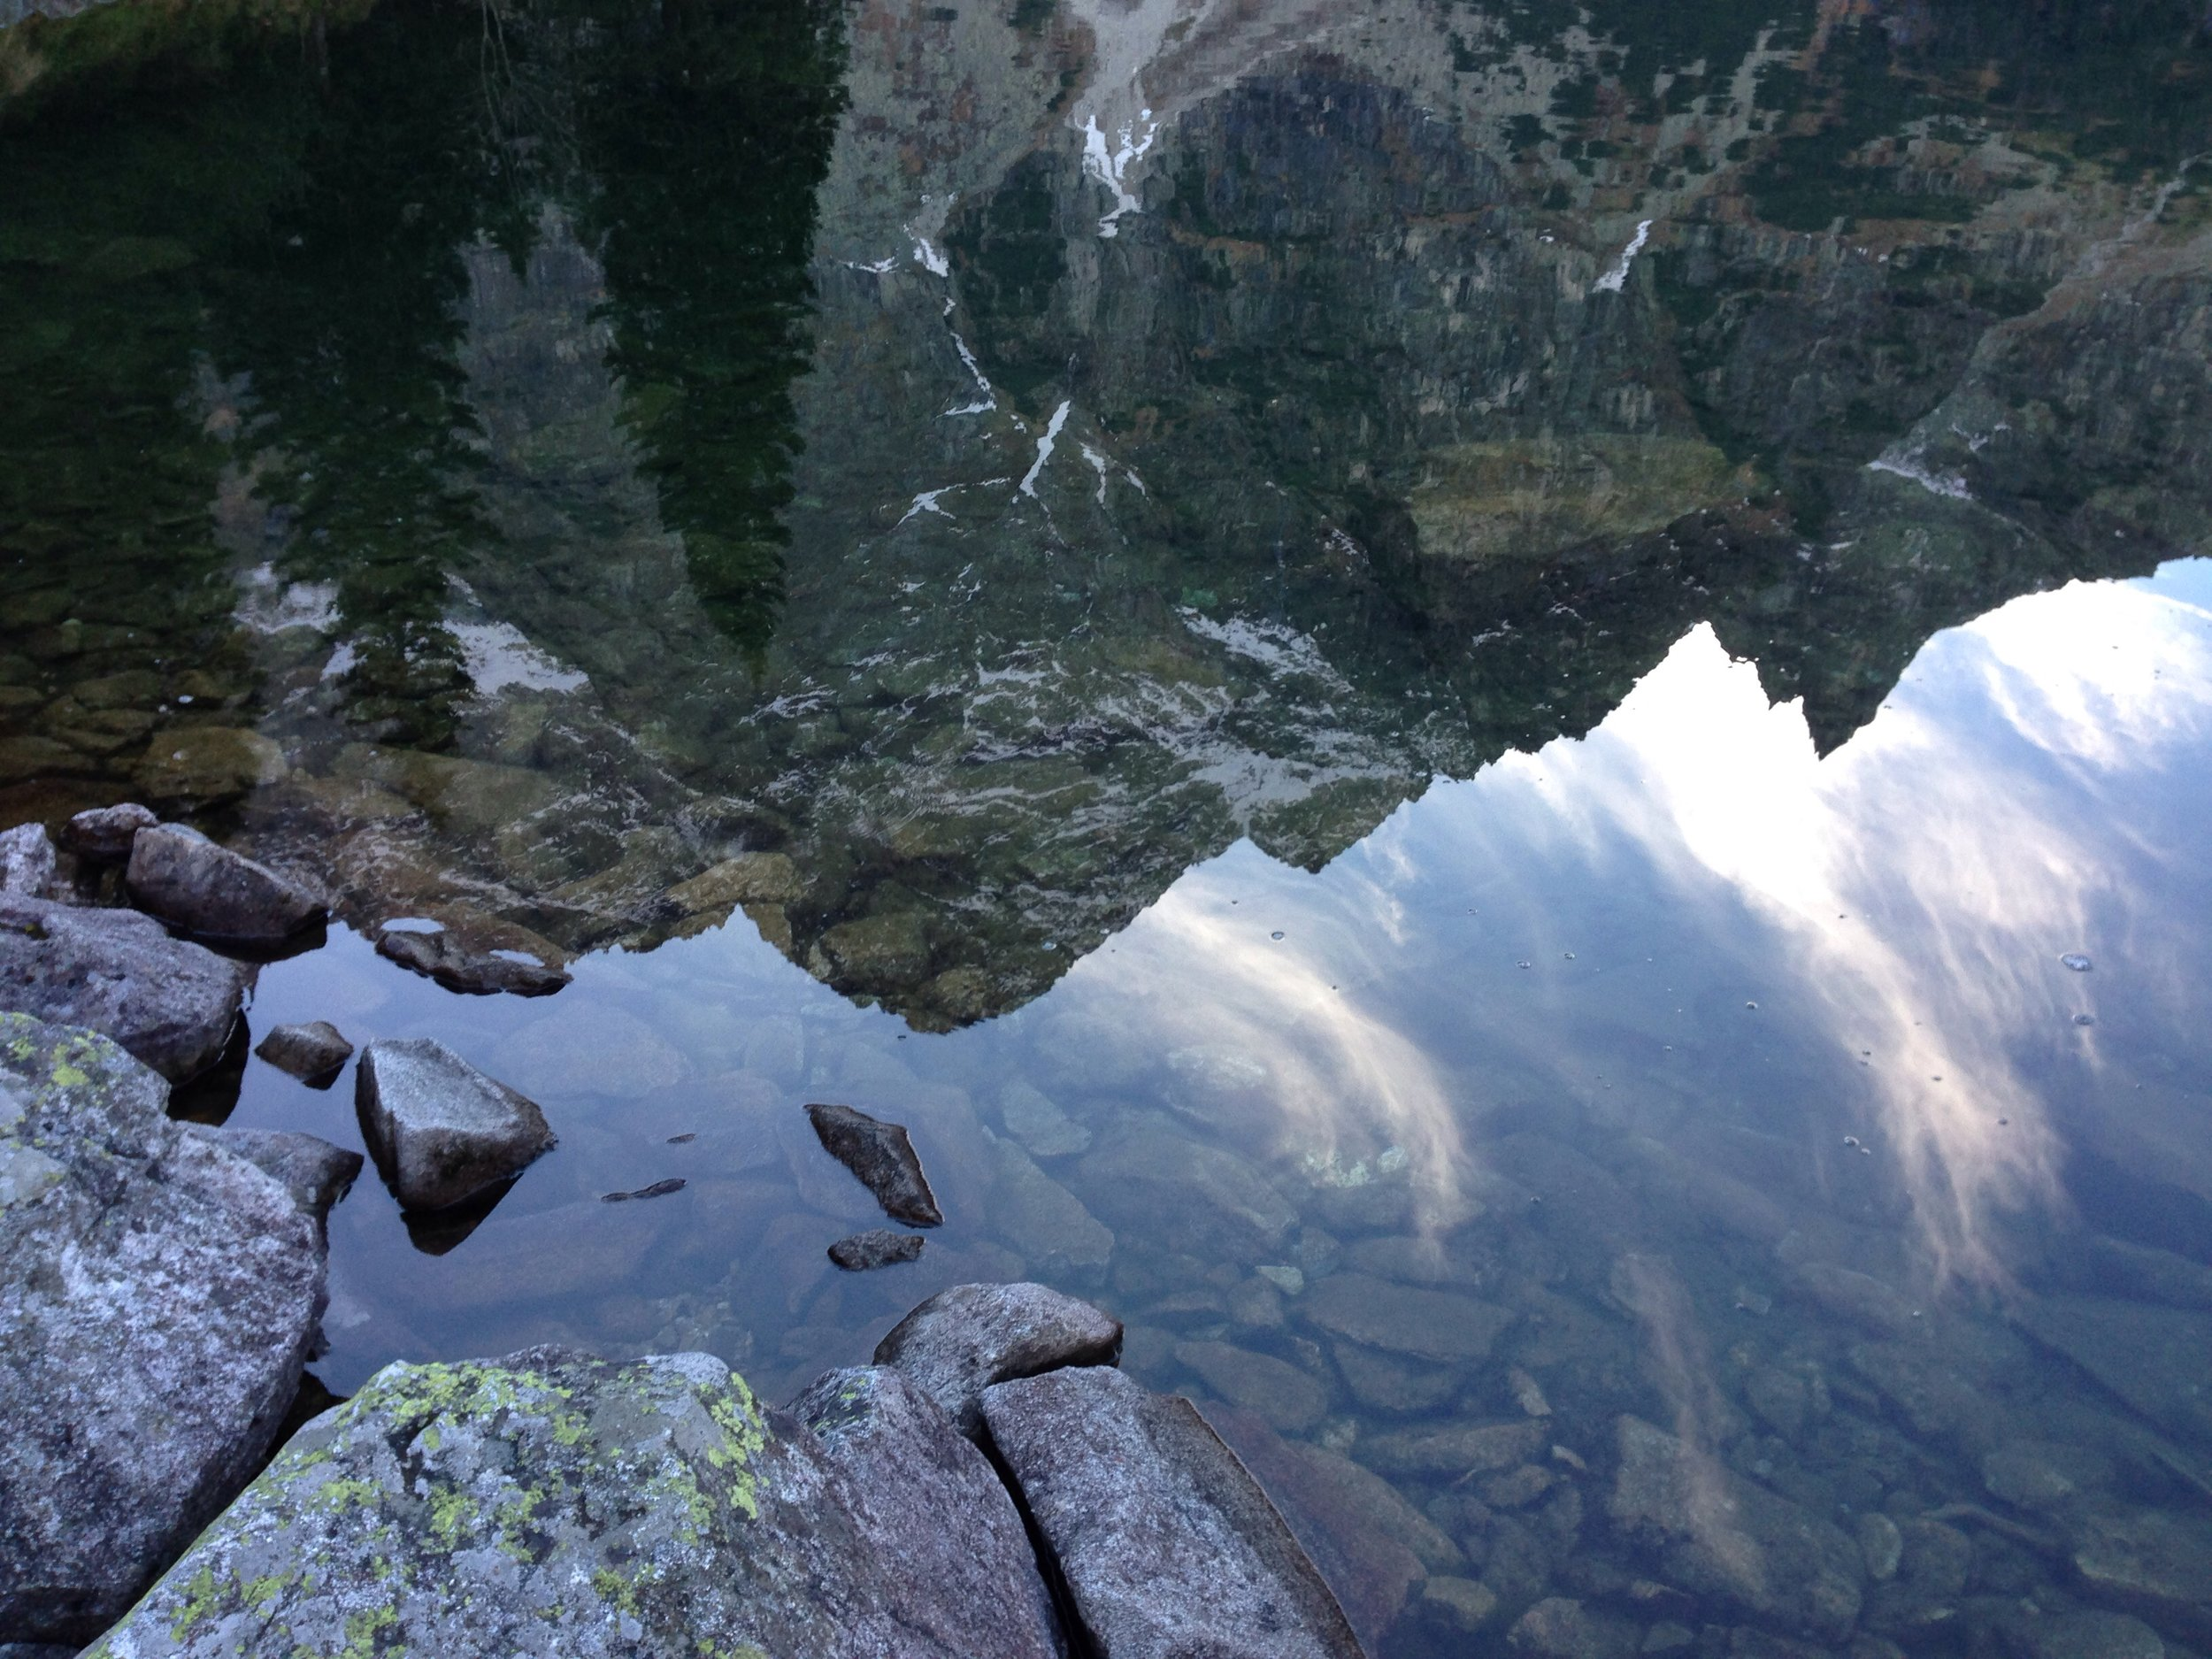 Mountains reflected in Morski Oko, one of the many lakes nestled in the Tatra Mountains